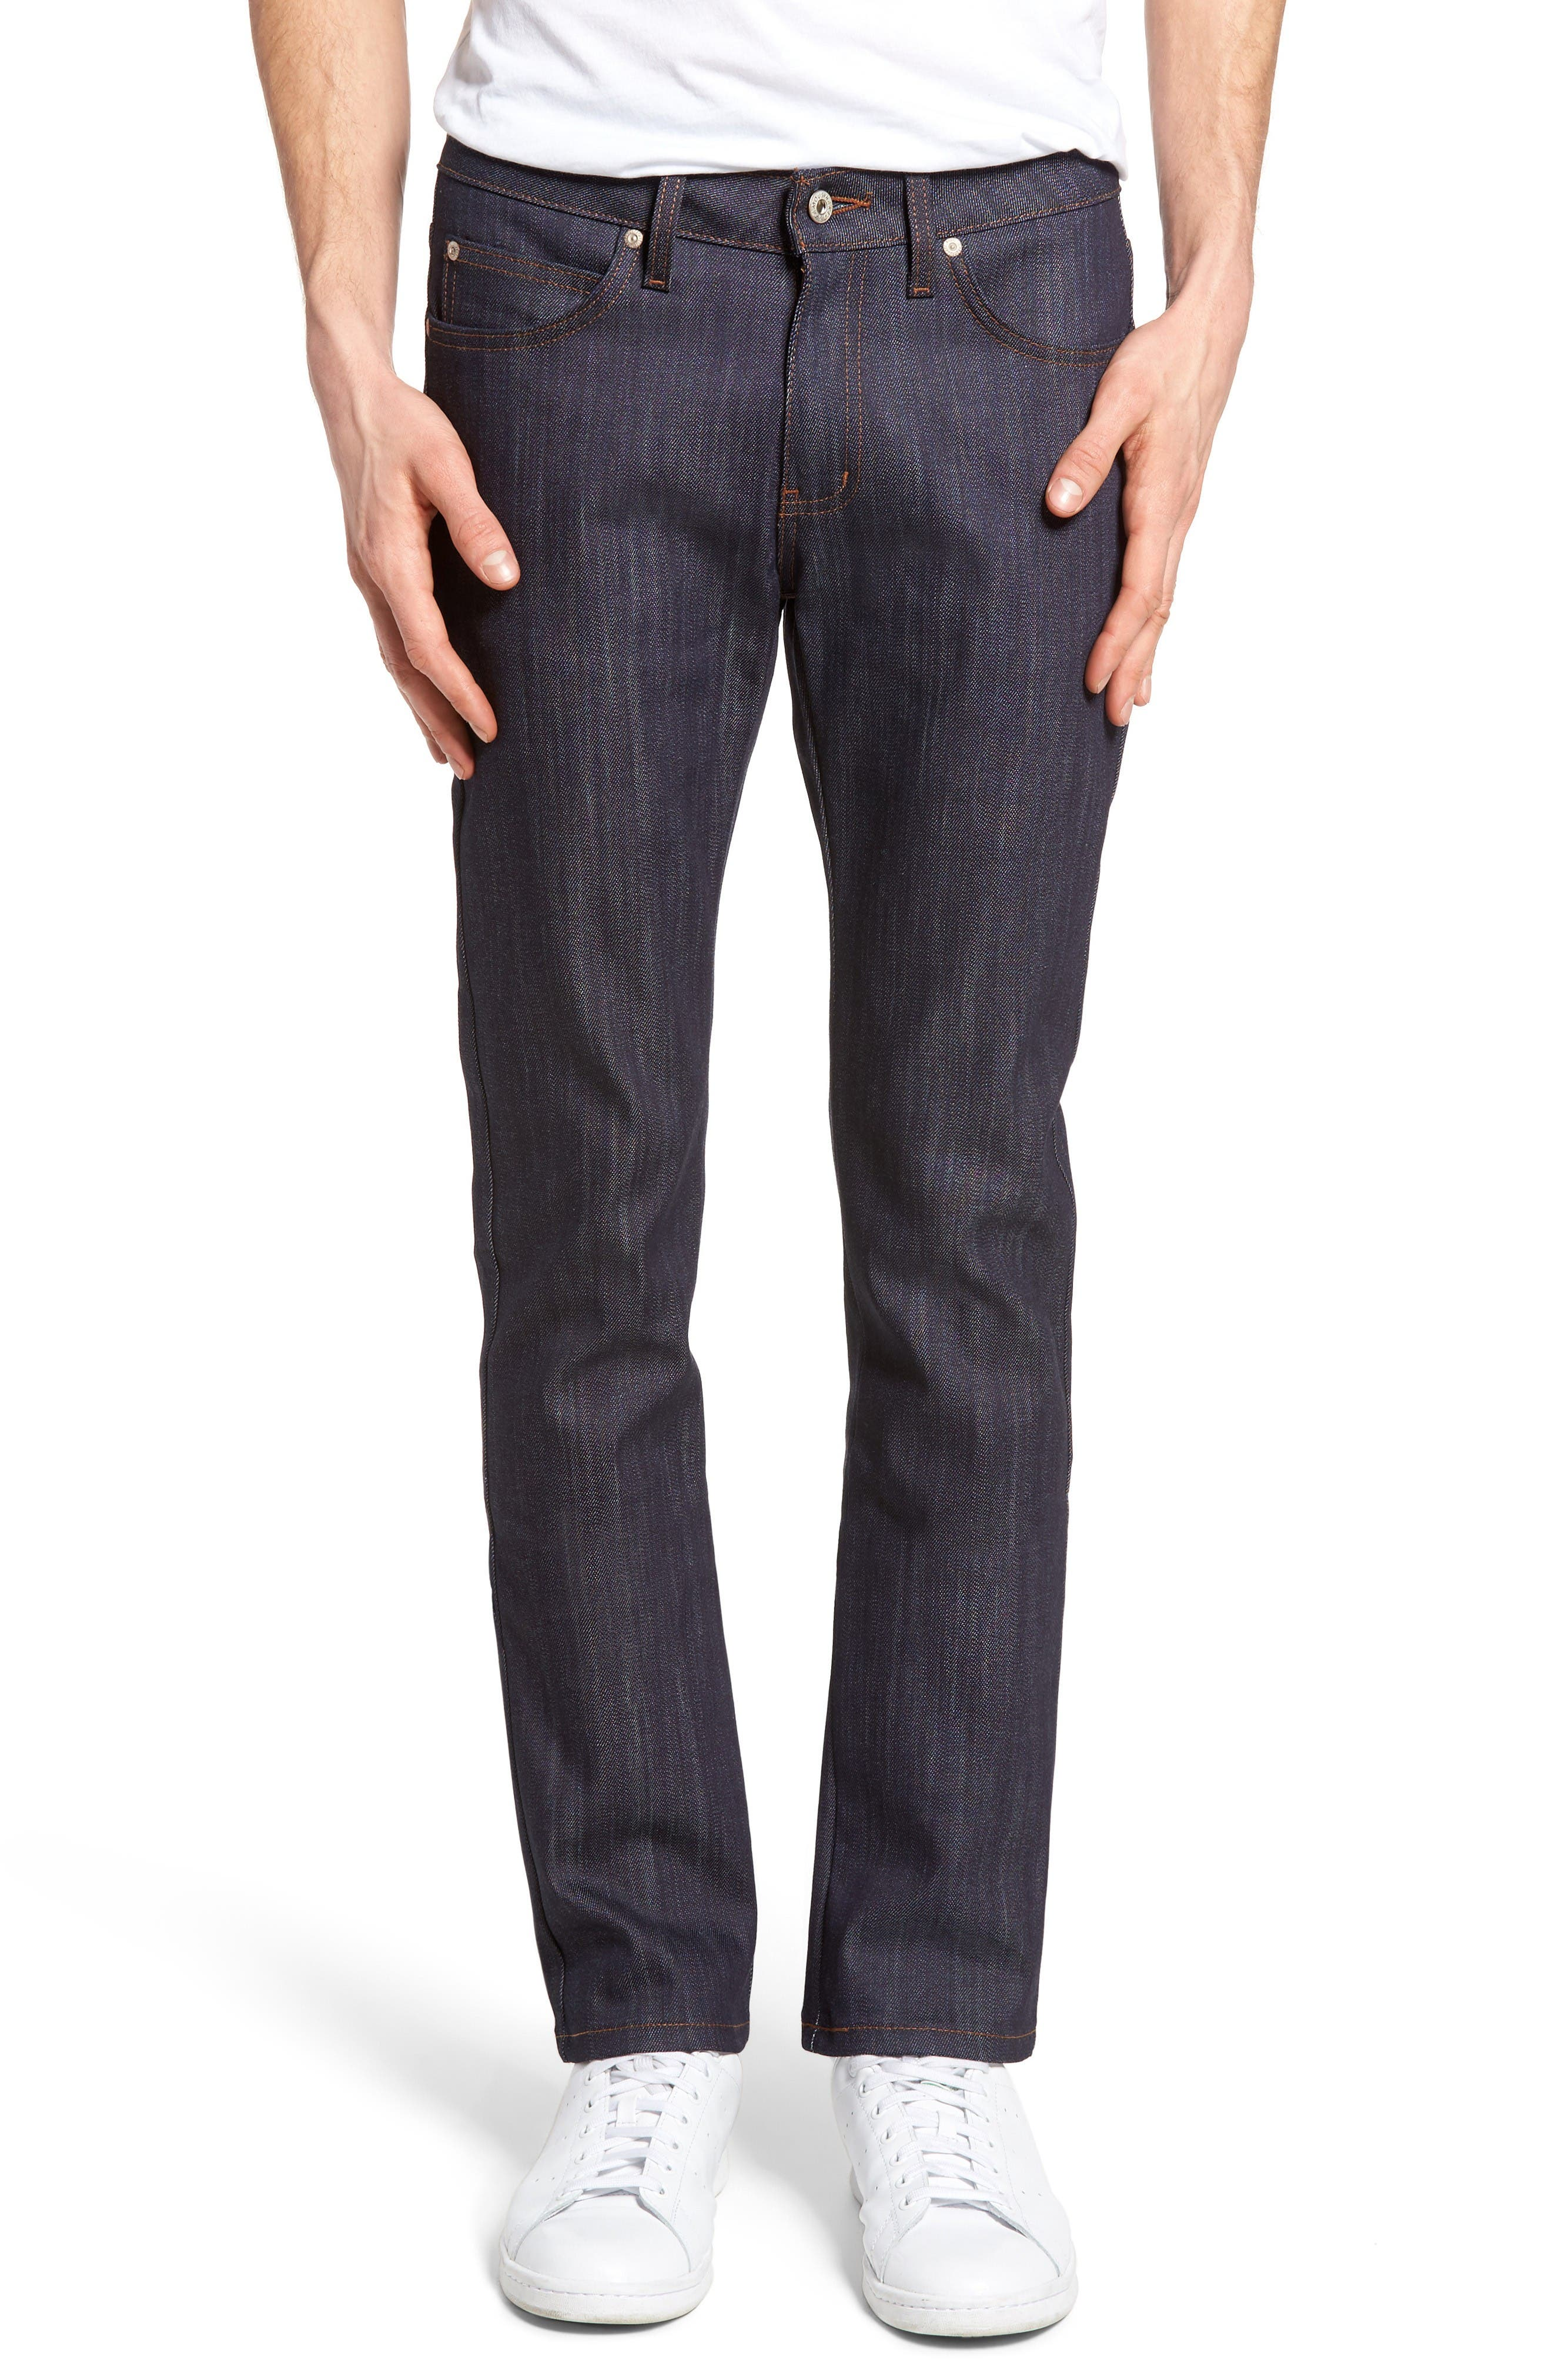 Naked & Famous Denim Skinny Guy Skinny Fit Selvedge Jeans